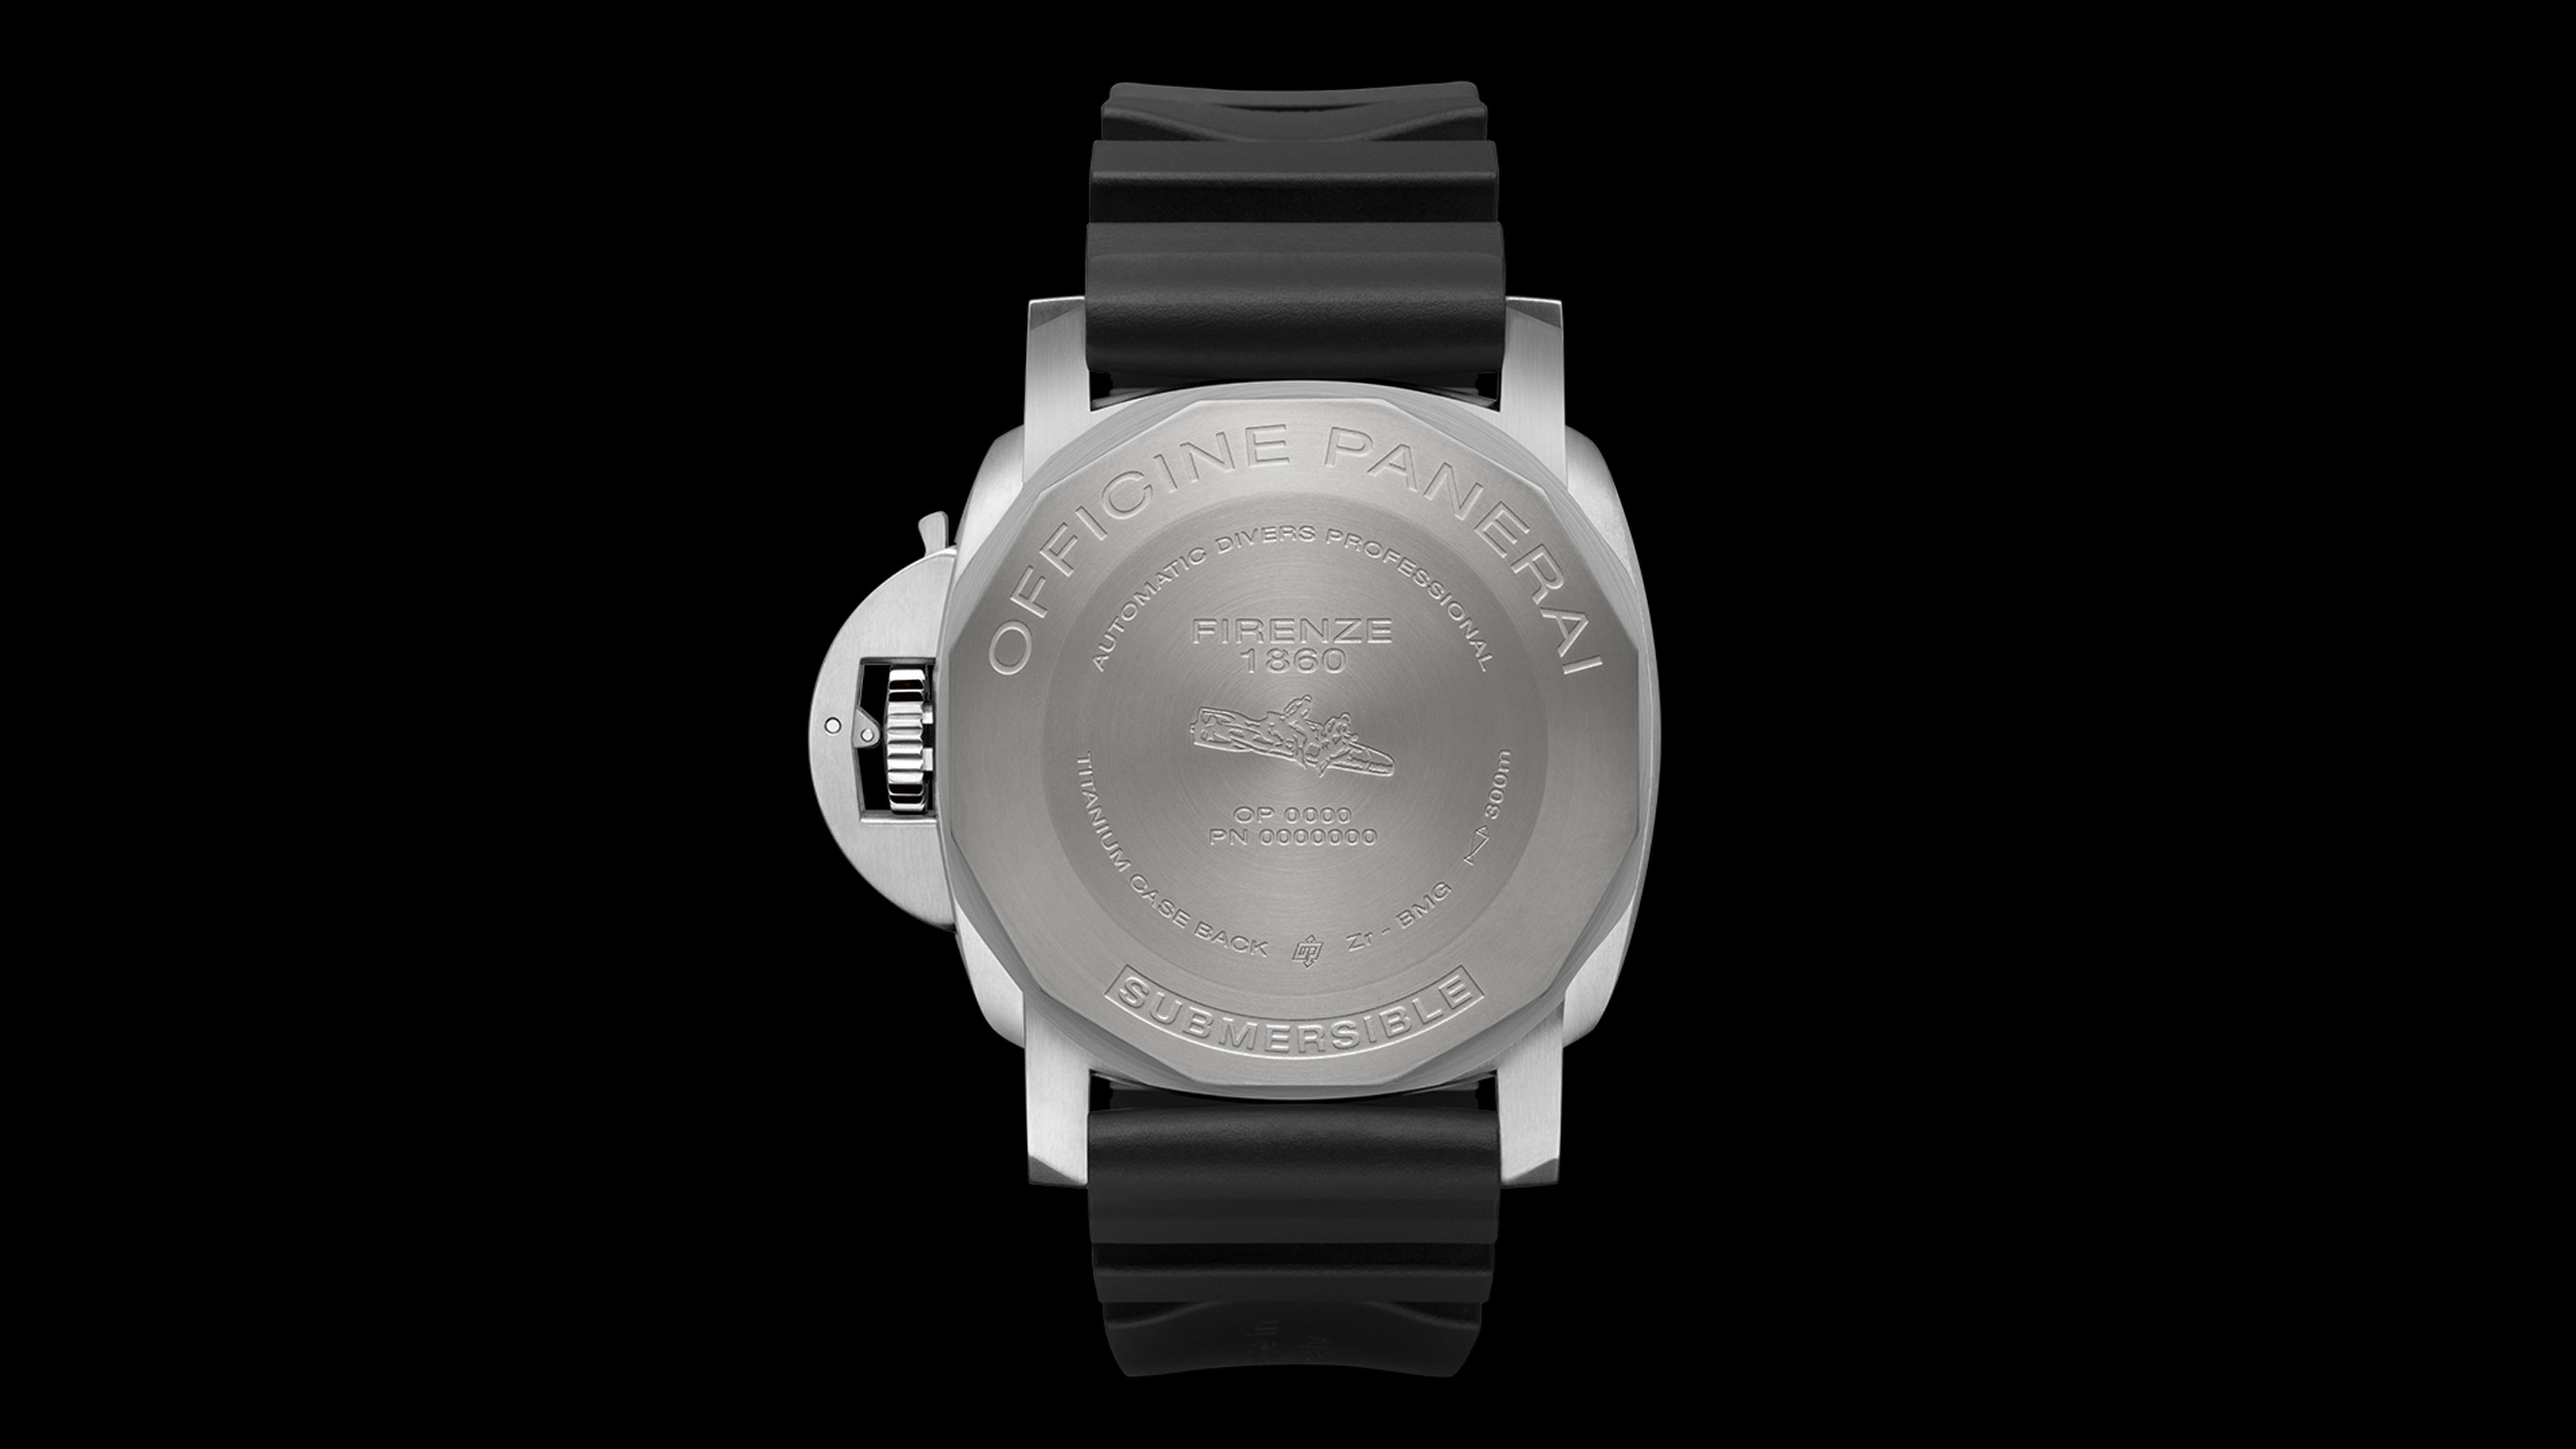 Часы Panerai Luminor Submersible 1950 BMG-TECH™ 3 Days Automatic – 47mm